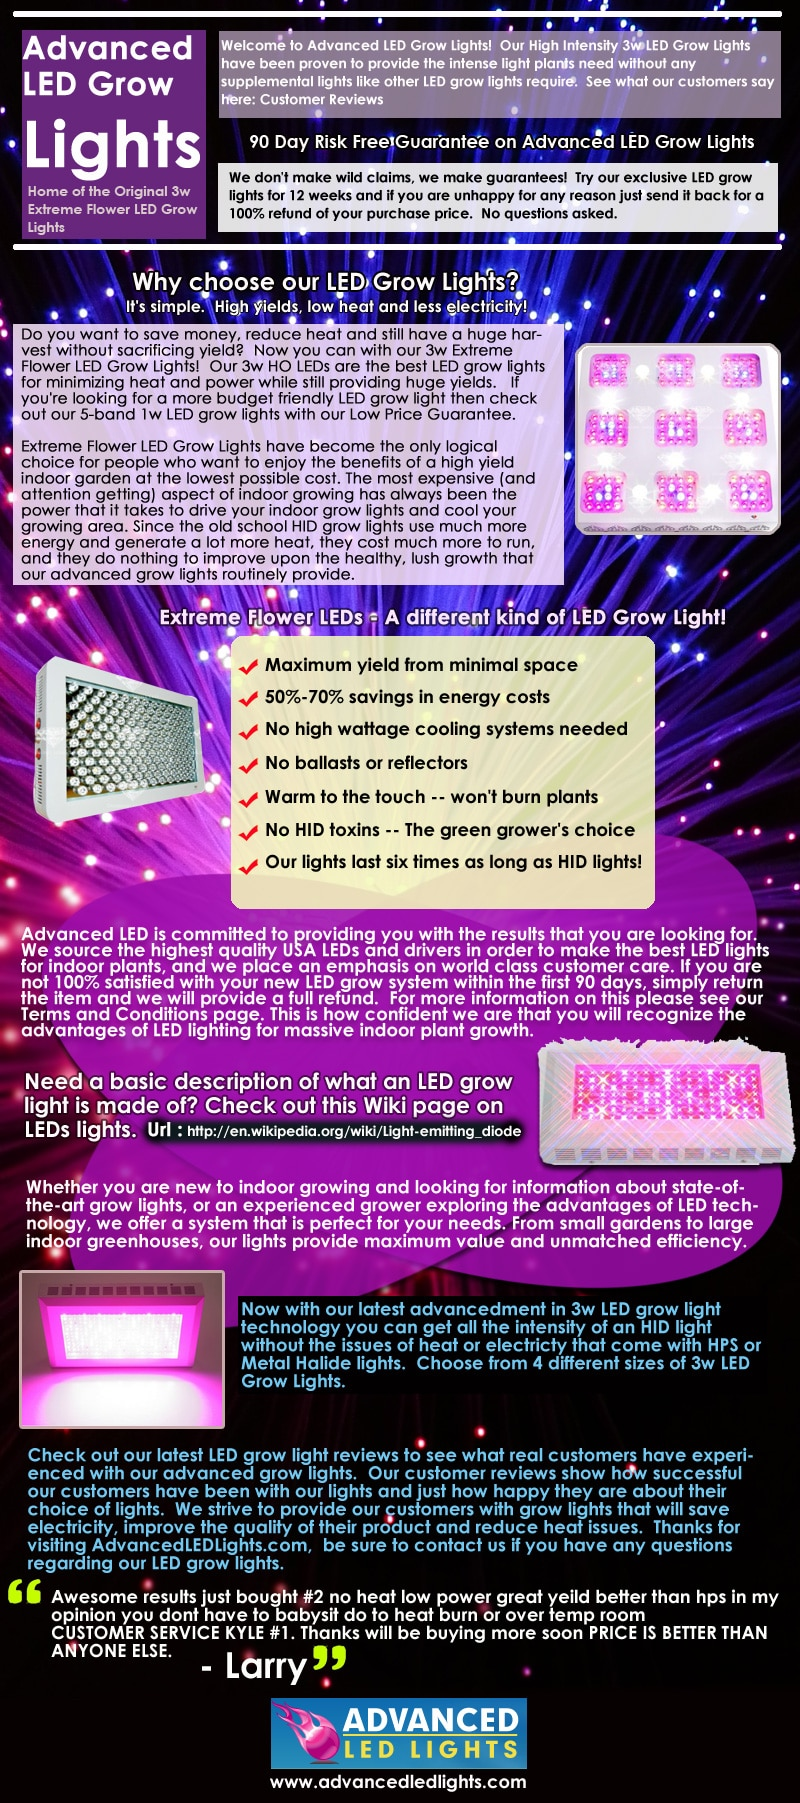 Infographics Designed by 7boats 5 - Advanced LED Grow Lights infographics